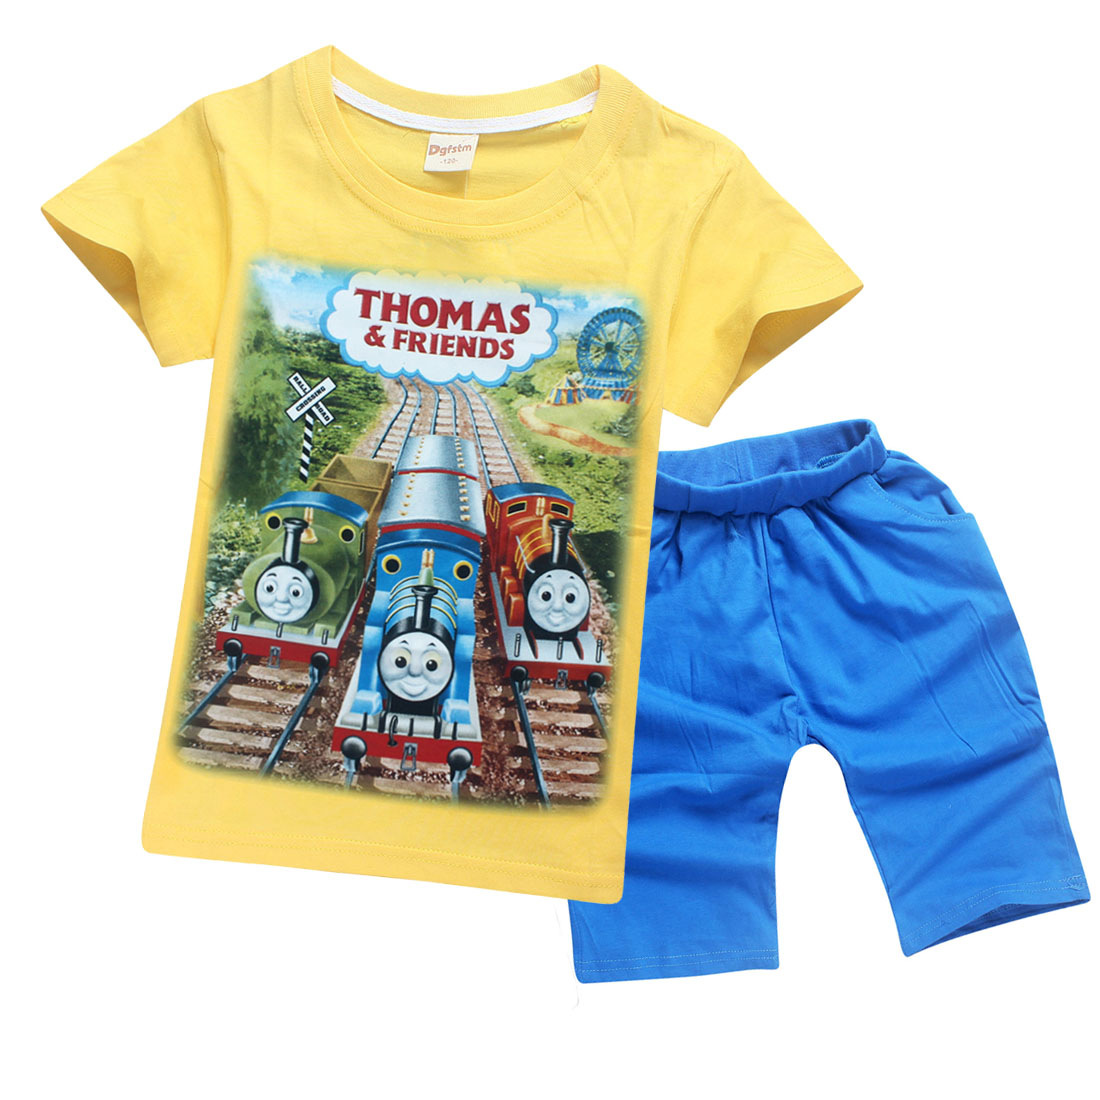 2018 New Years Thomas friend Children Kids Clothing Sets Summer Cotton Boys Short Sleeve Jeans Blouse and shirt Clothing Suits